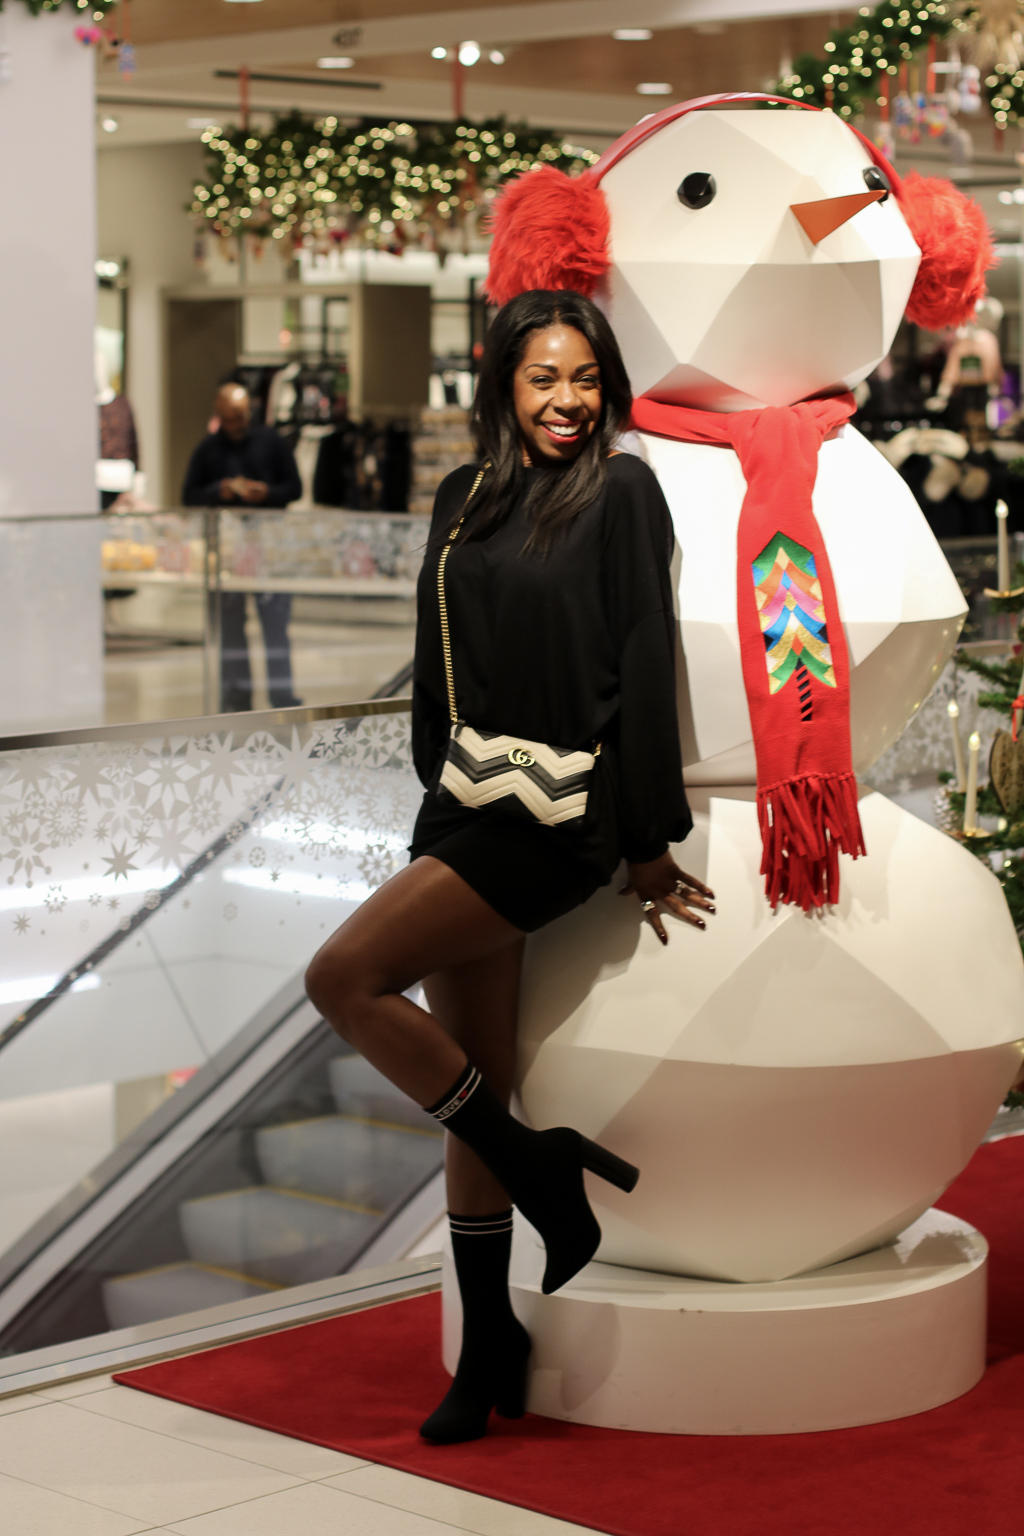 One Christmas Party down, many more to go. Check out my first holiday look courtesy of Tobi